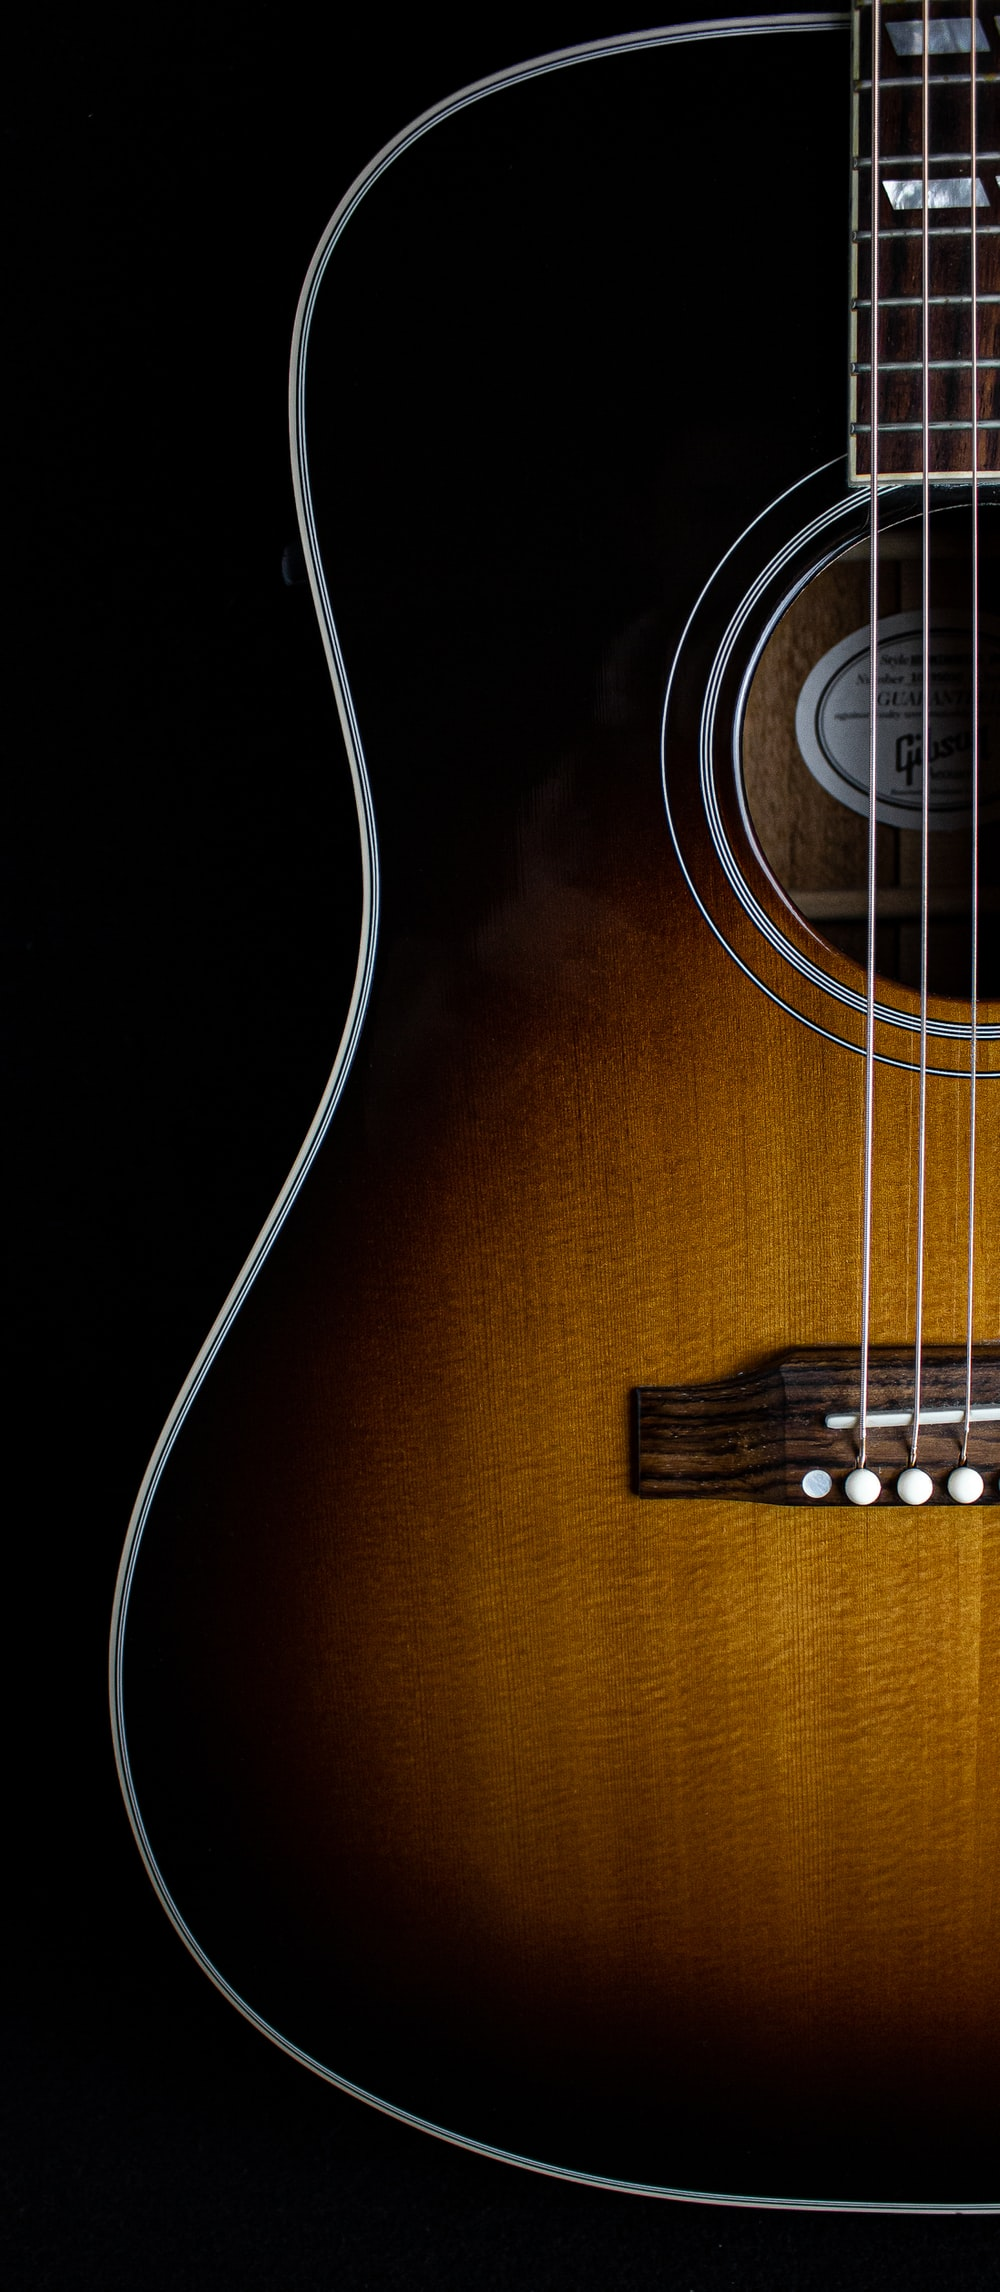 brown acoustic guitar on black background